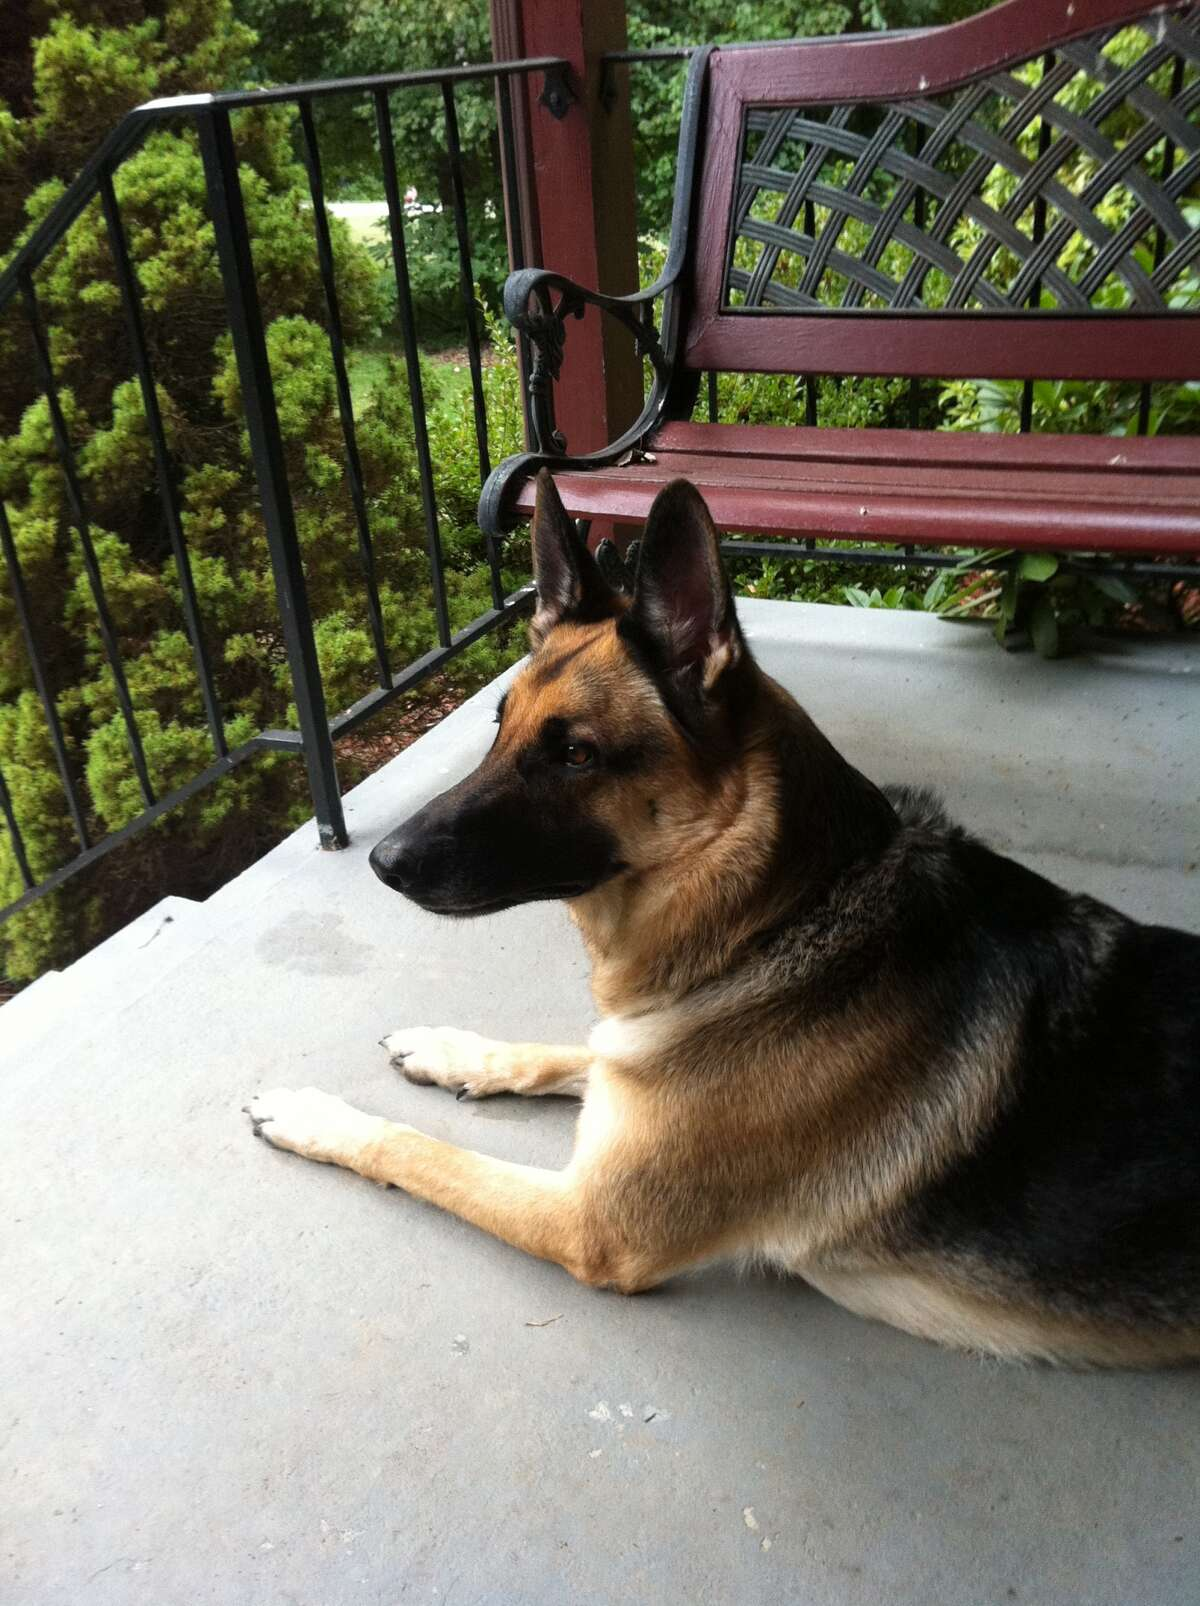 This is Sasha. She is a fun loving, energetic, and protective German shepherd who loves to play Frisbee!